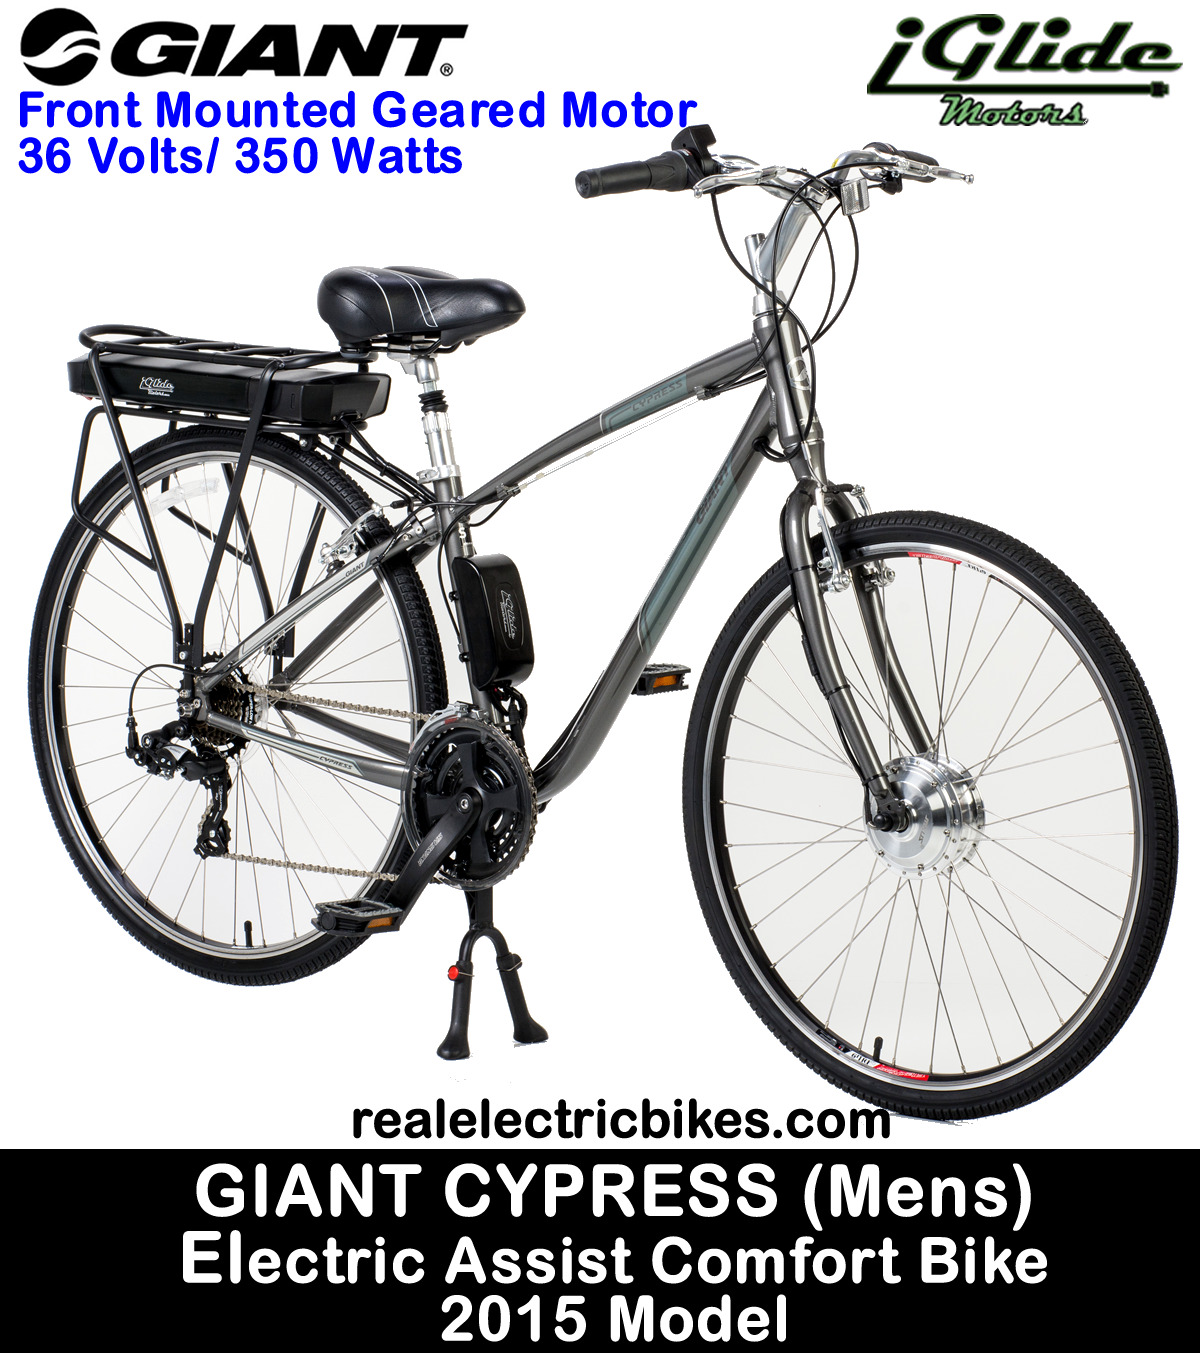 Giant Cypress Size Large Electric Assist Comfort City Bike